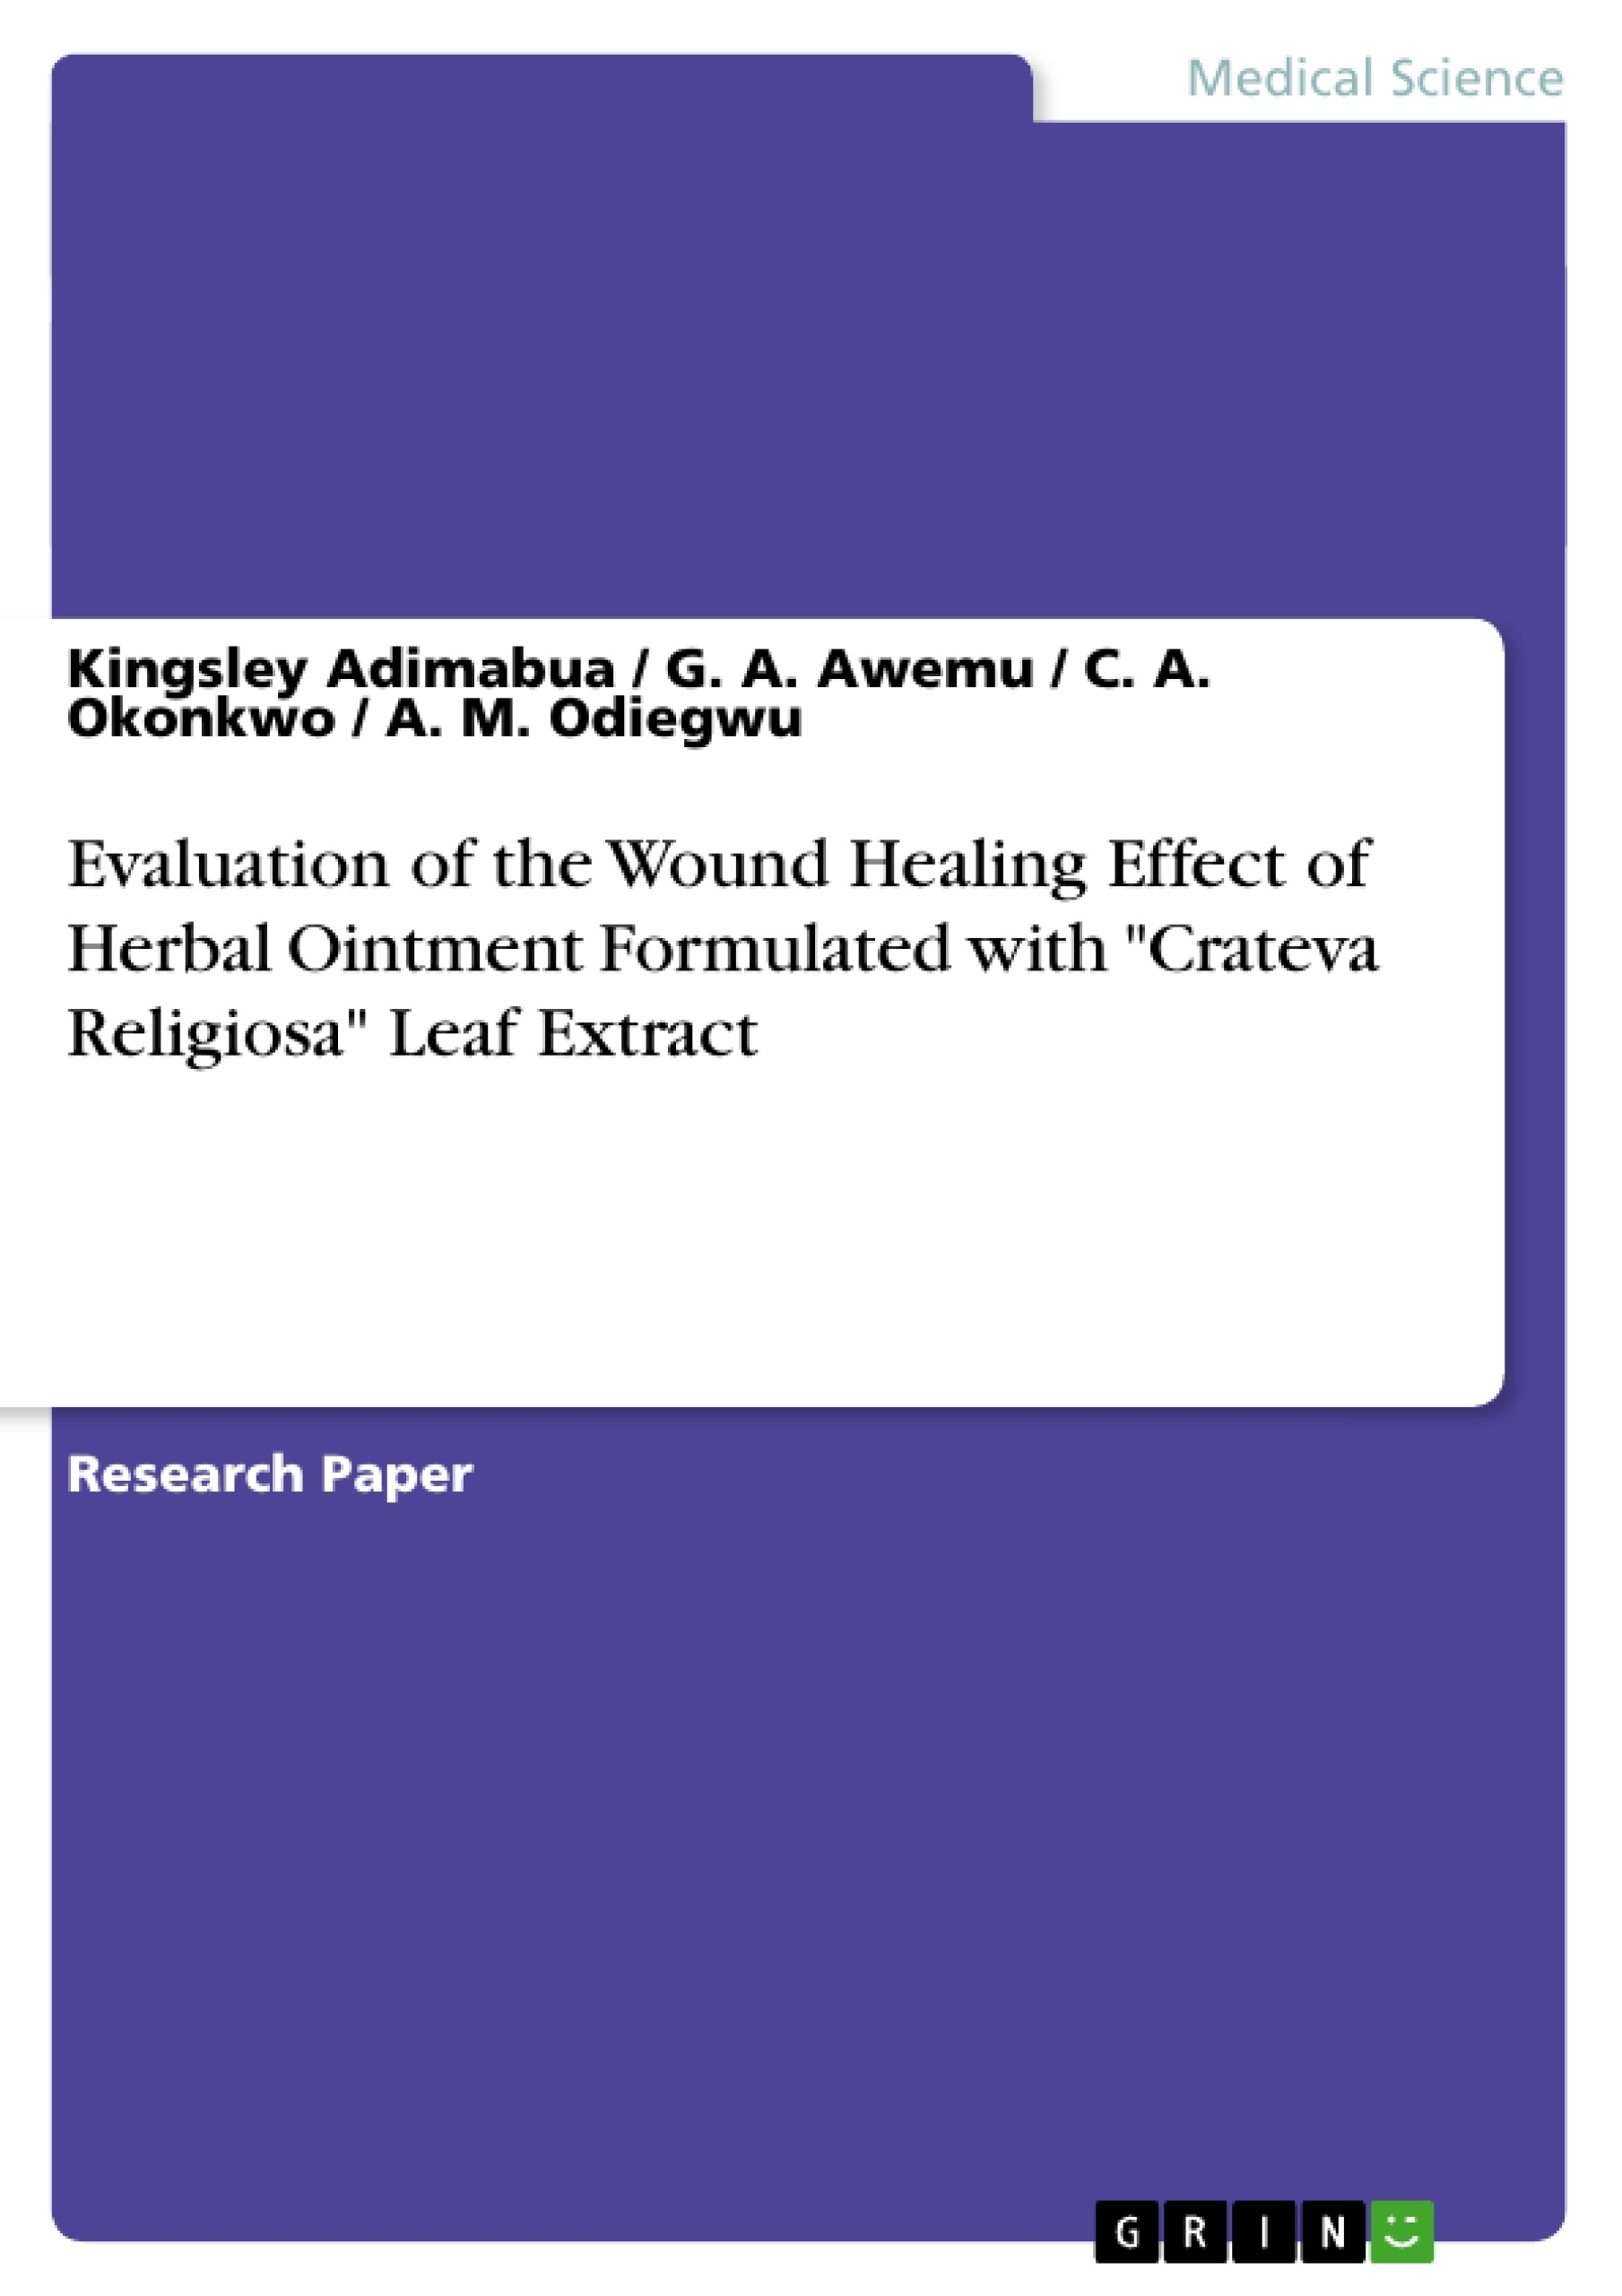 """Title: Evaluation of the Wound Healing Effect of Herbal Ointment Formulated with """"Crateva Religiosa"""" Leaf Extract"""